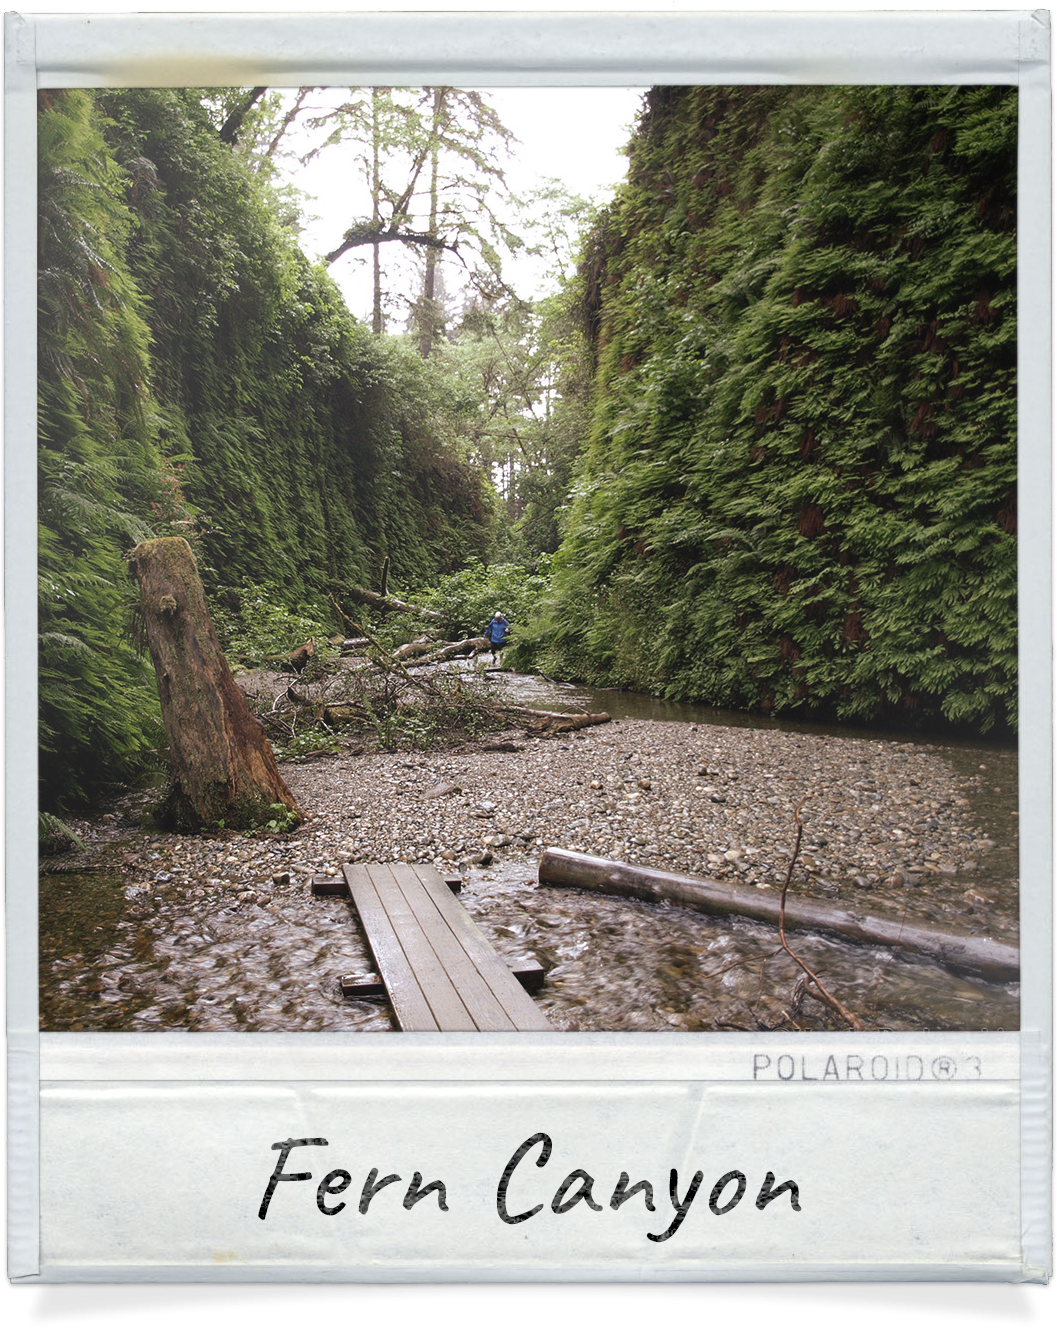 Fern Canyon near Redwood Meadows in Crescent City, CA